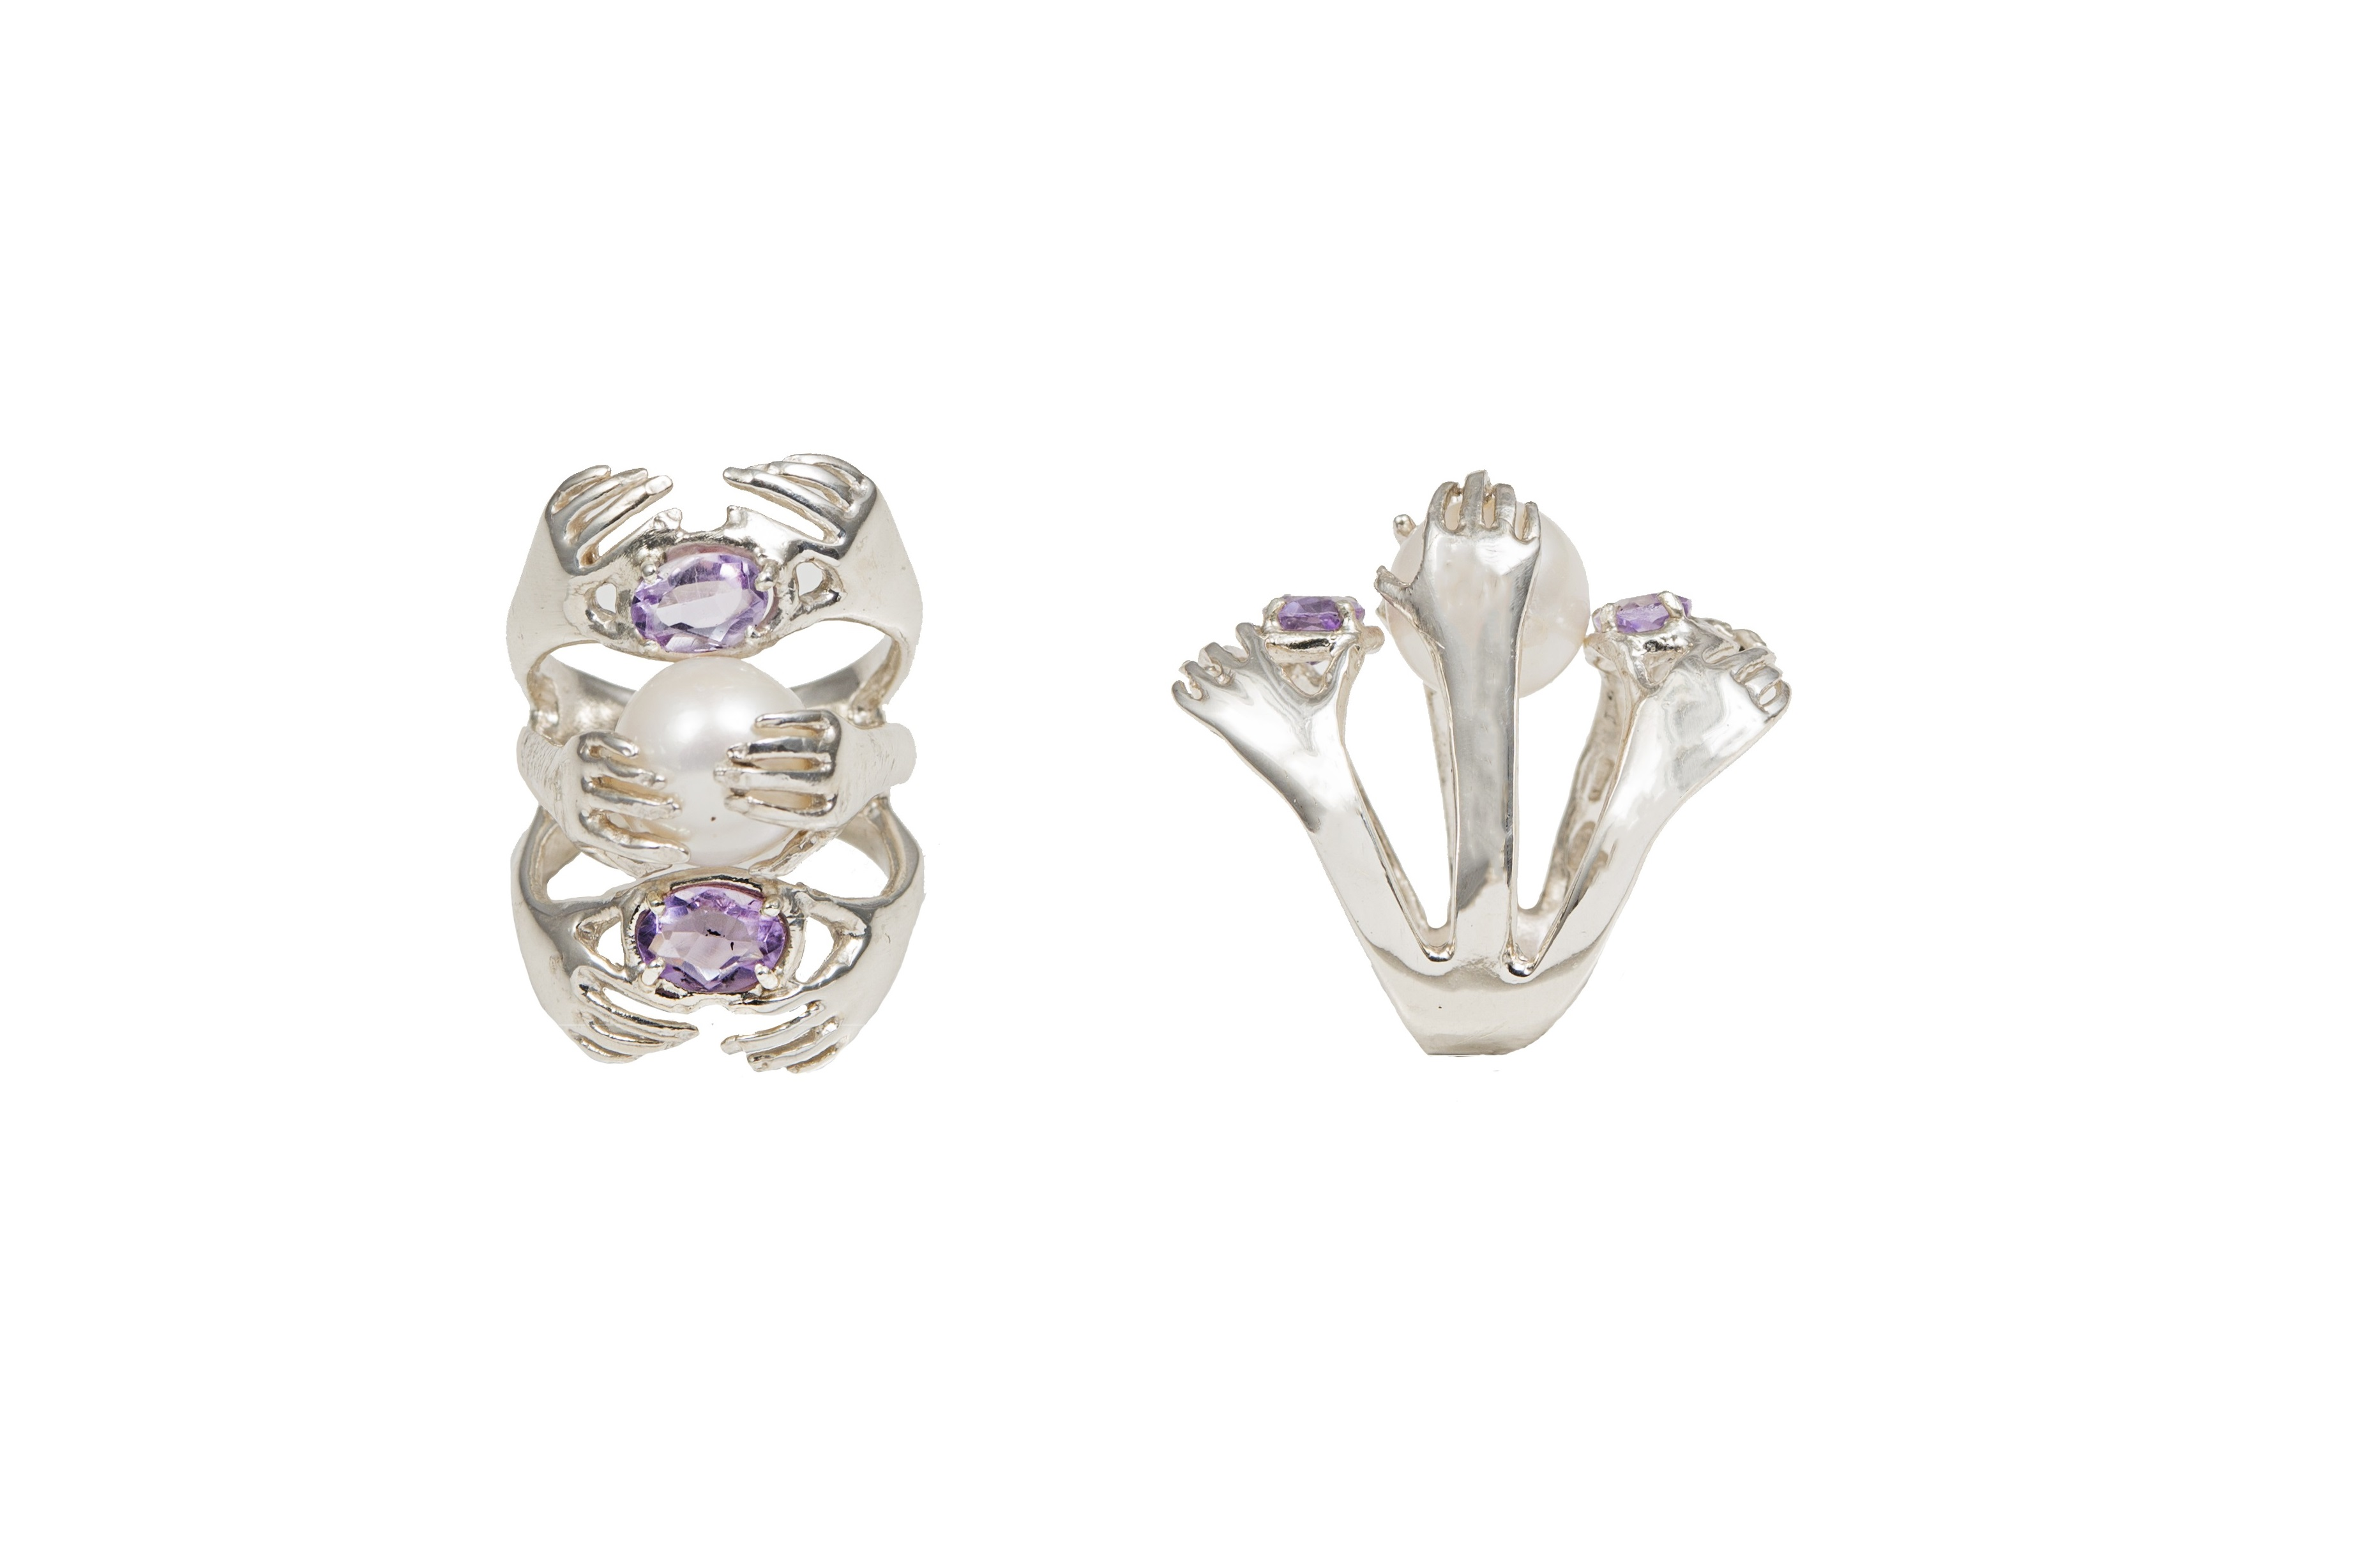 6 hands silver ring with amethysts and pearls